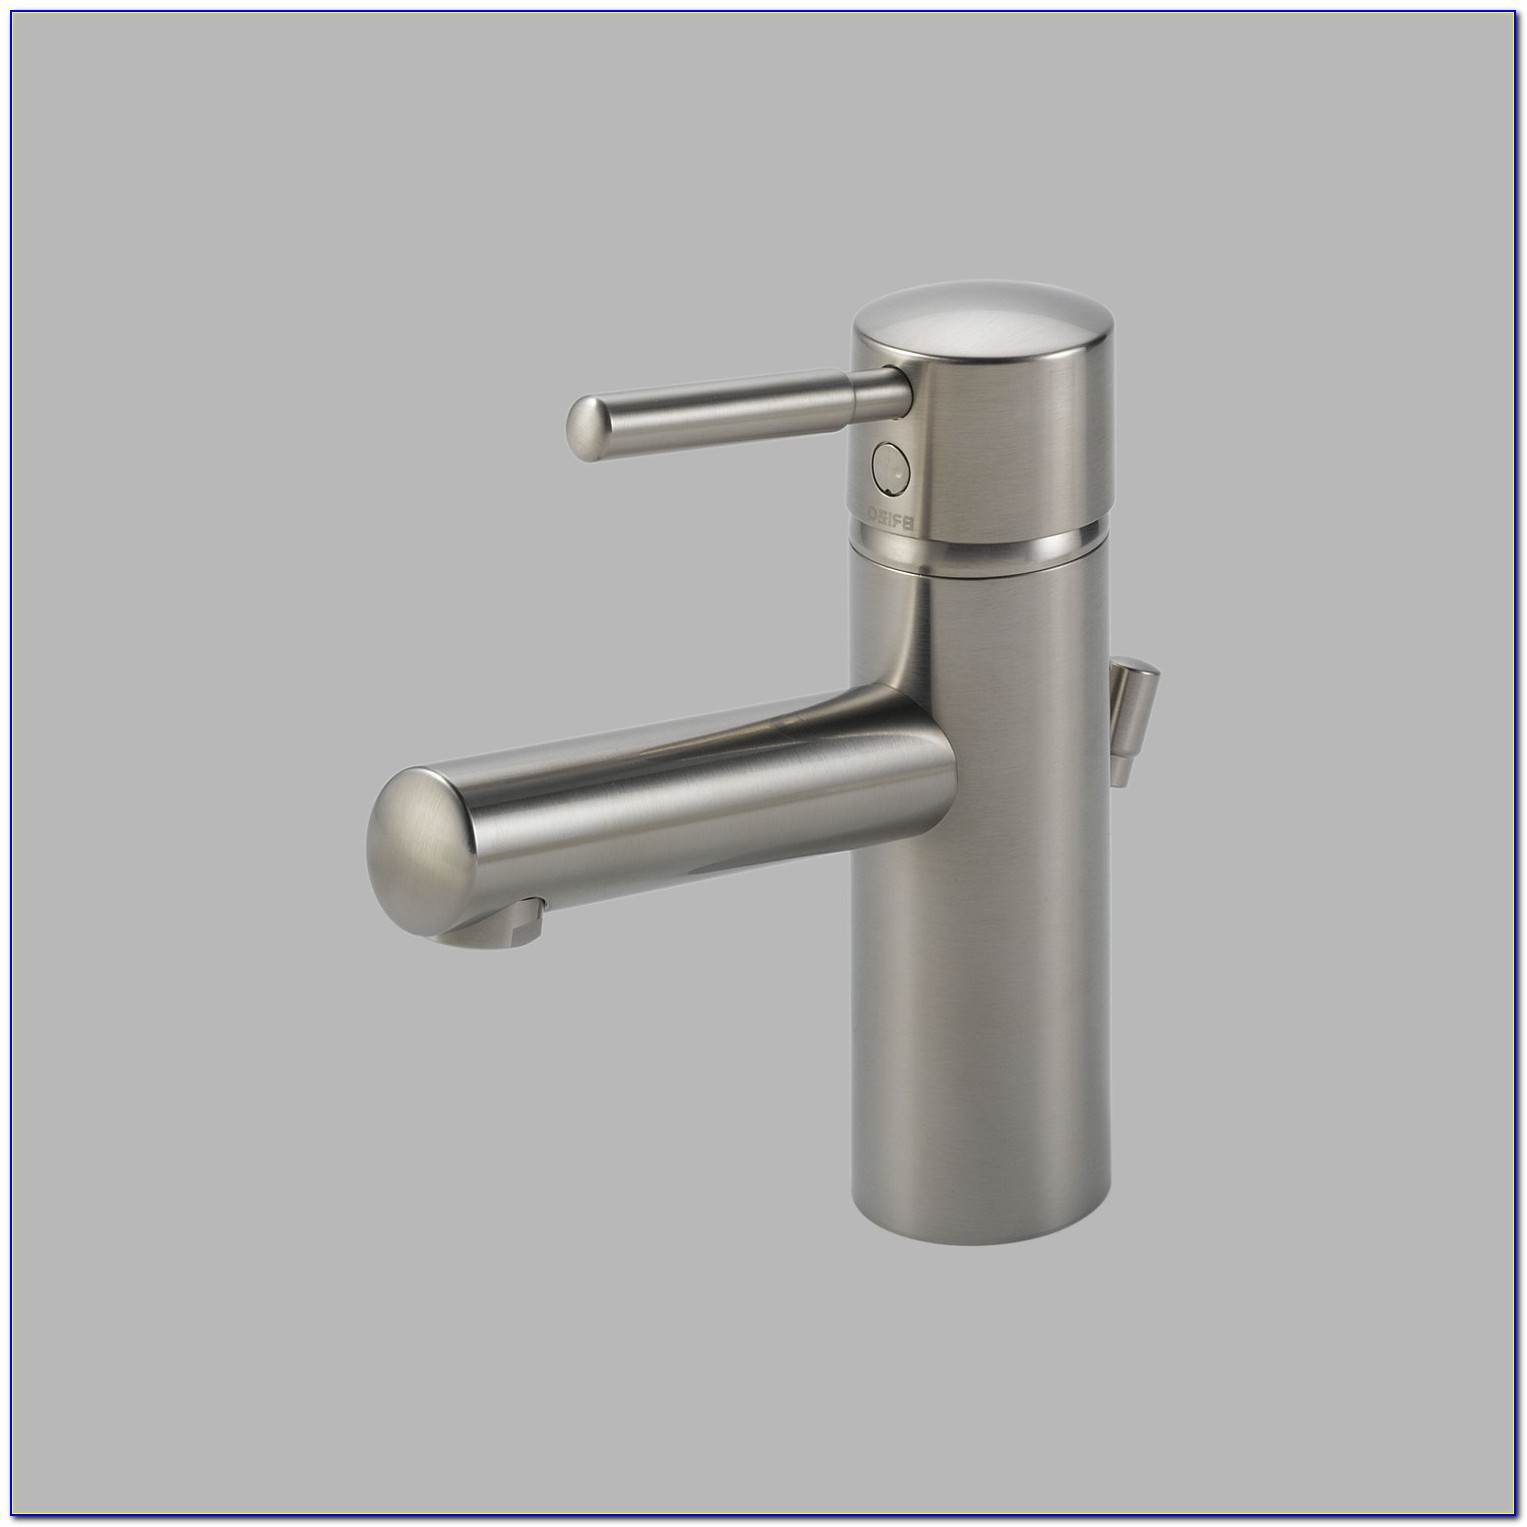 Grohe Bathroom Faucet Single Hole